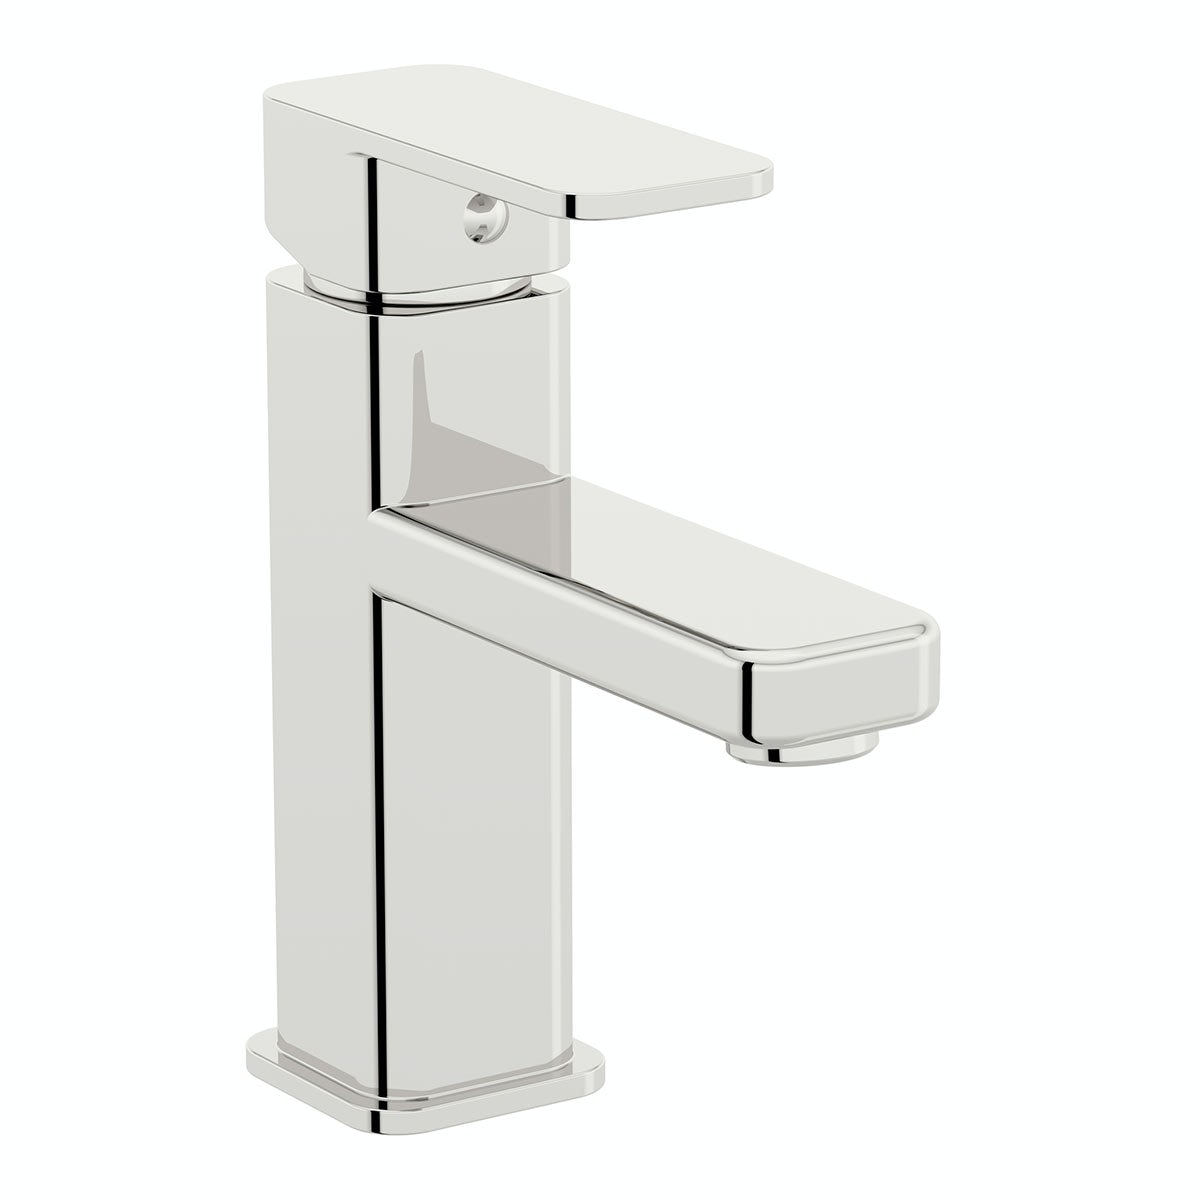 Orchard Quartz basin mixer tap